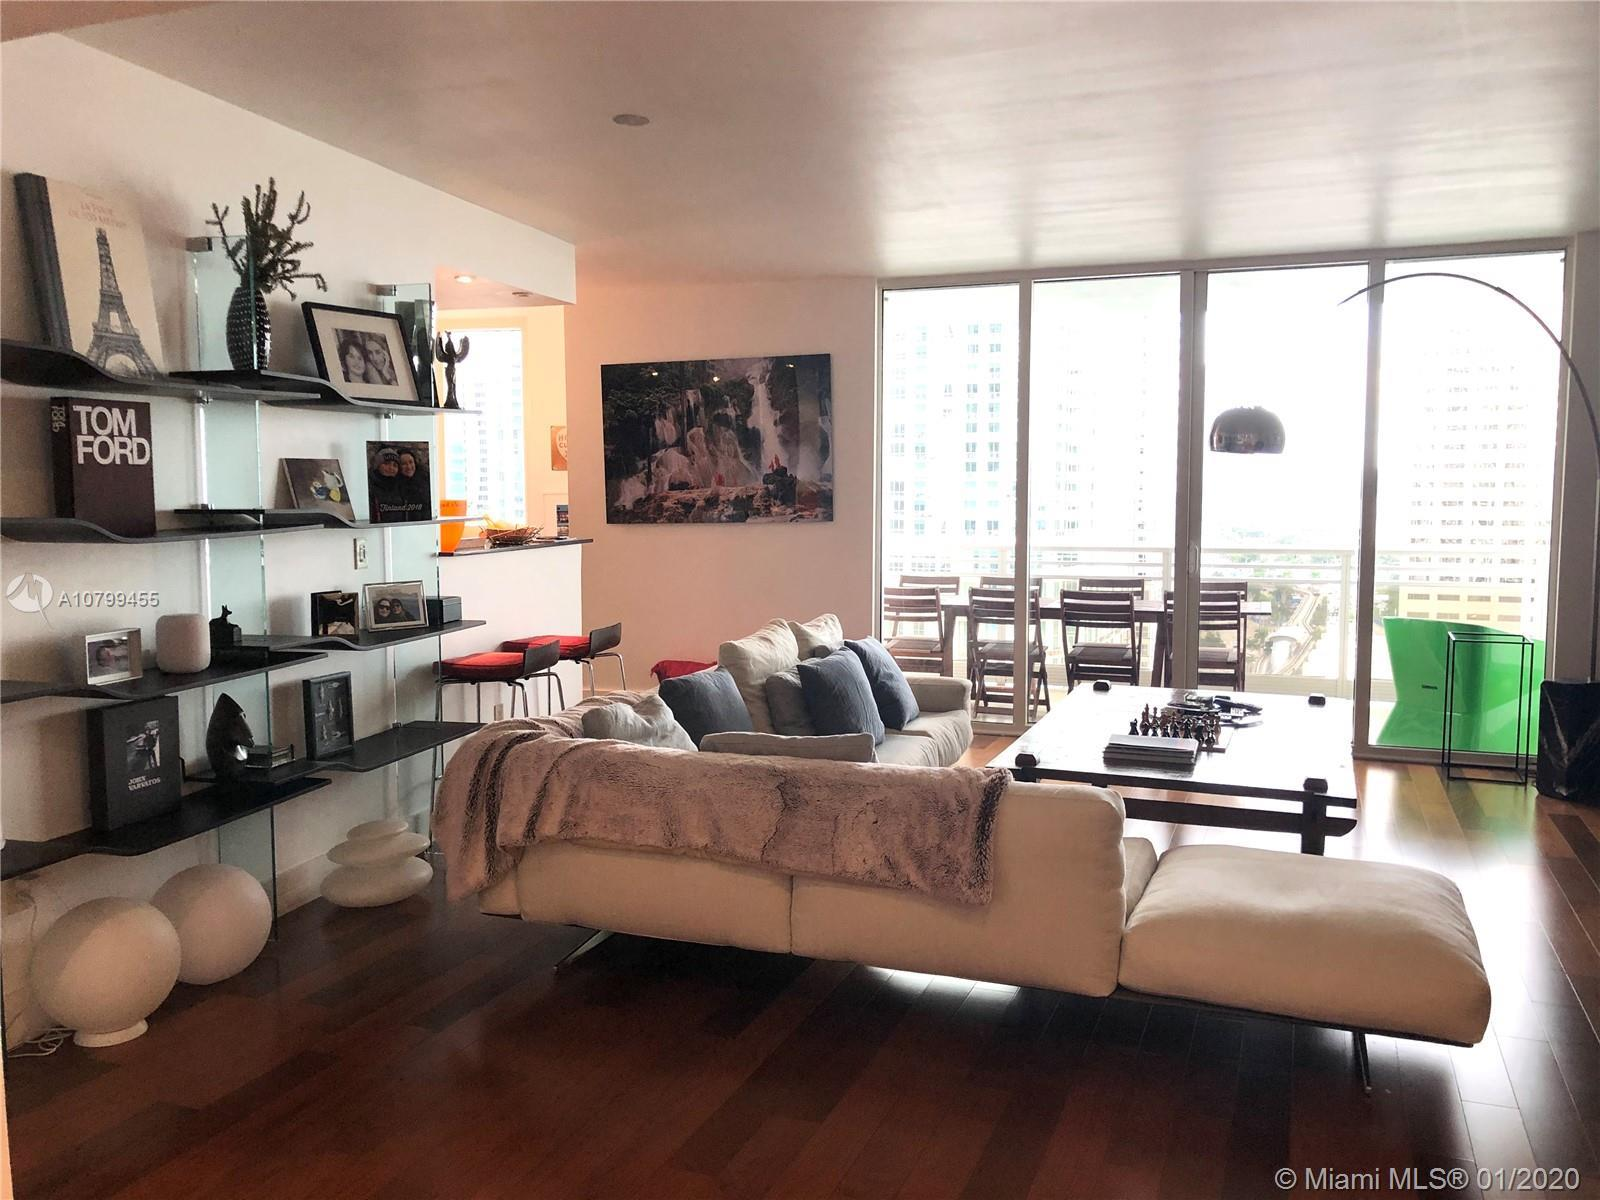 Miami Riches Real Estate presents 3bed/2.5baths at Carbonell condo in Brickell Key. Enjoy amazing ba